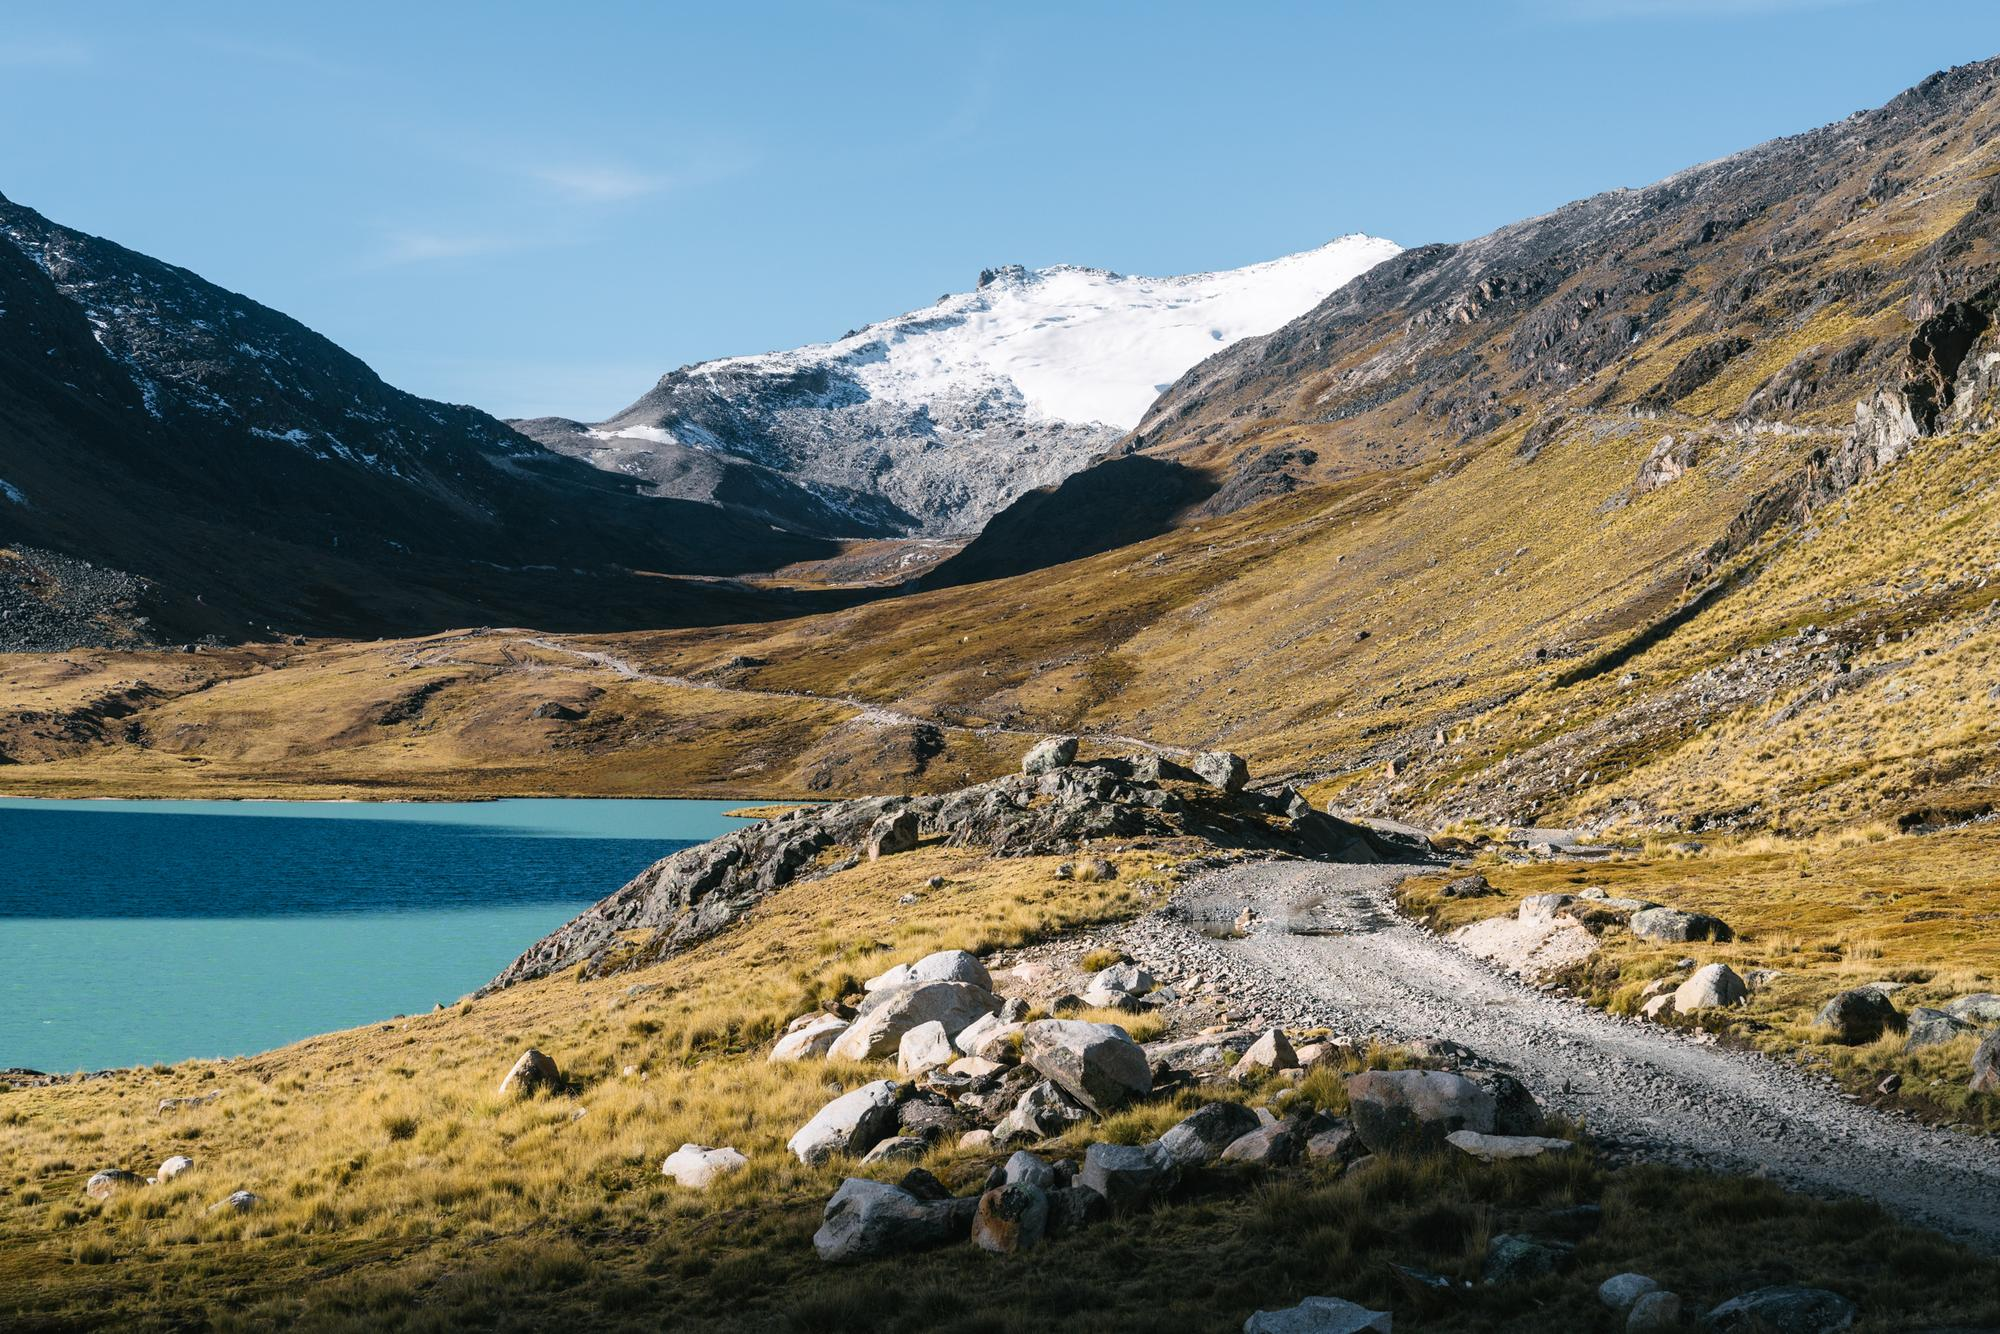 Mint lakes and the glaciers that feed them